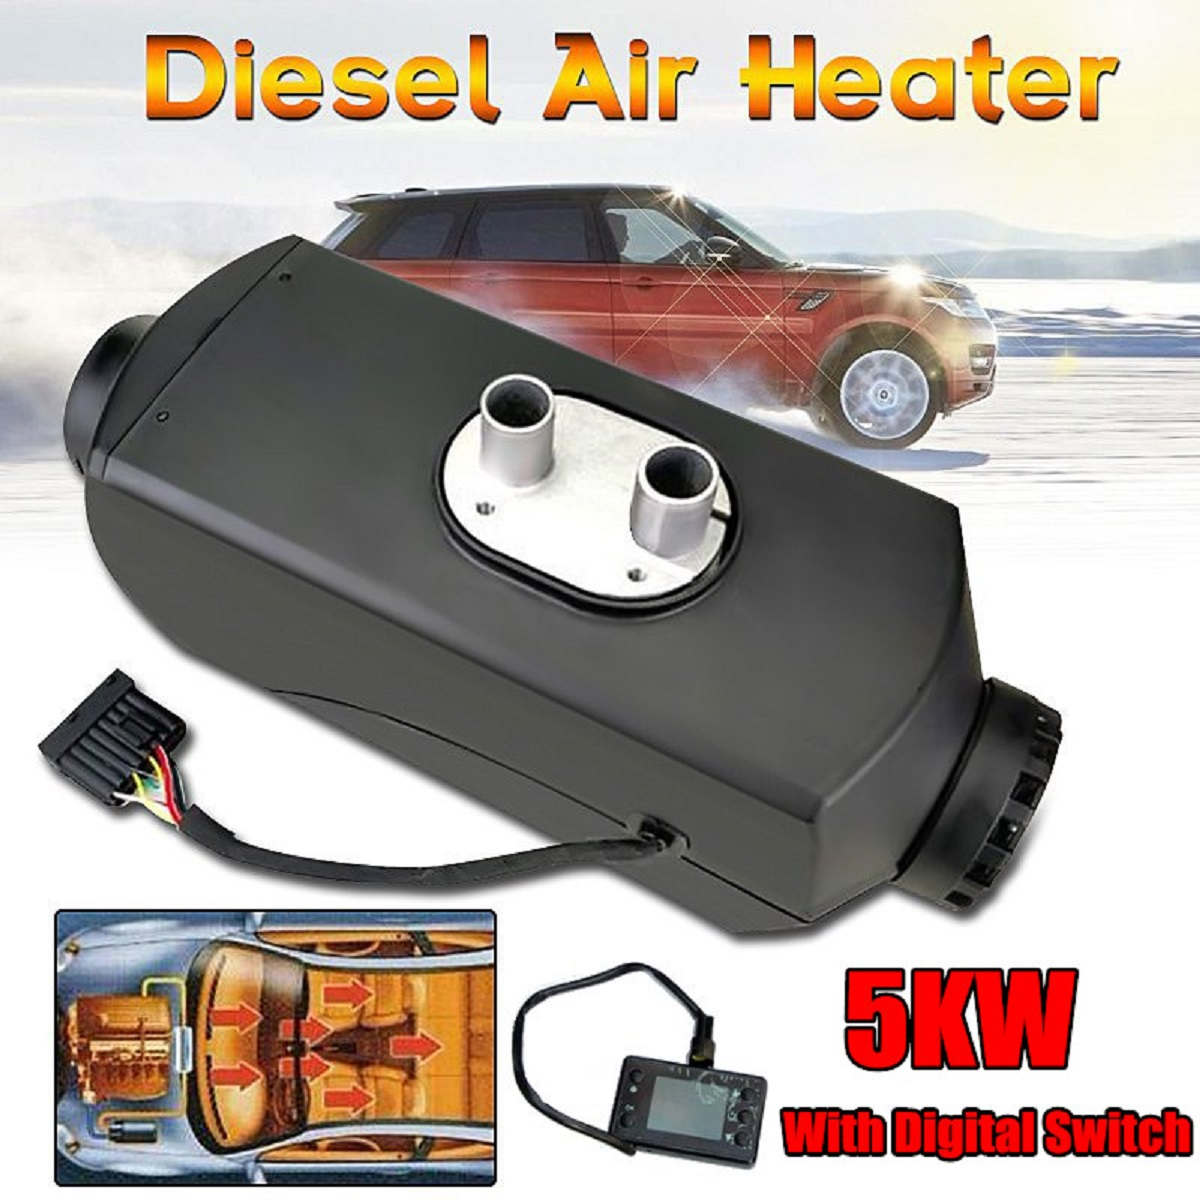 24V 5KW Fuel Diesel Air Heater Planar With Digital Switch For Car Boat Bus